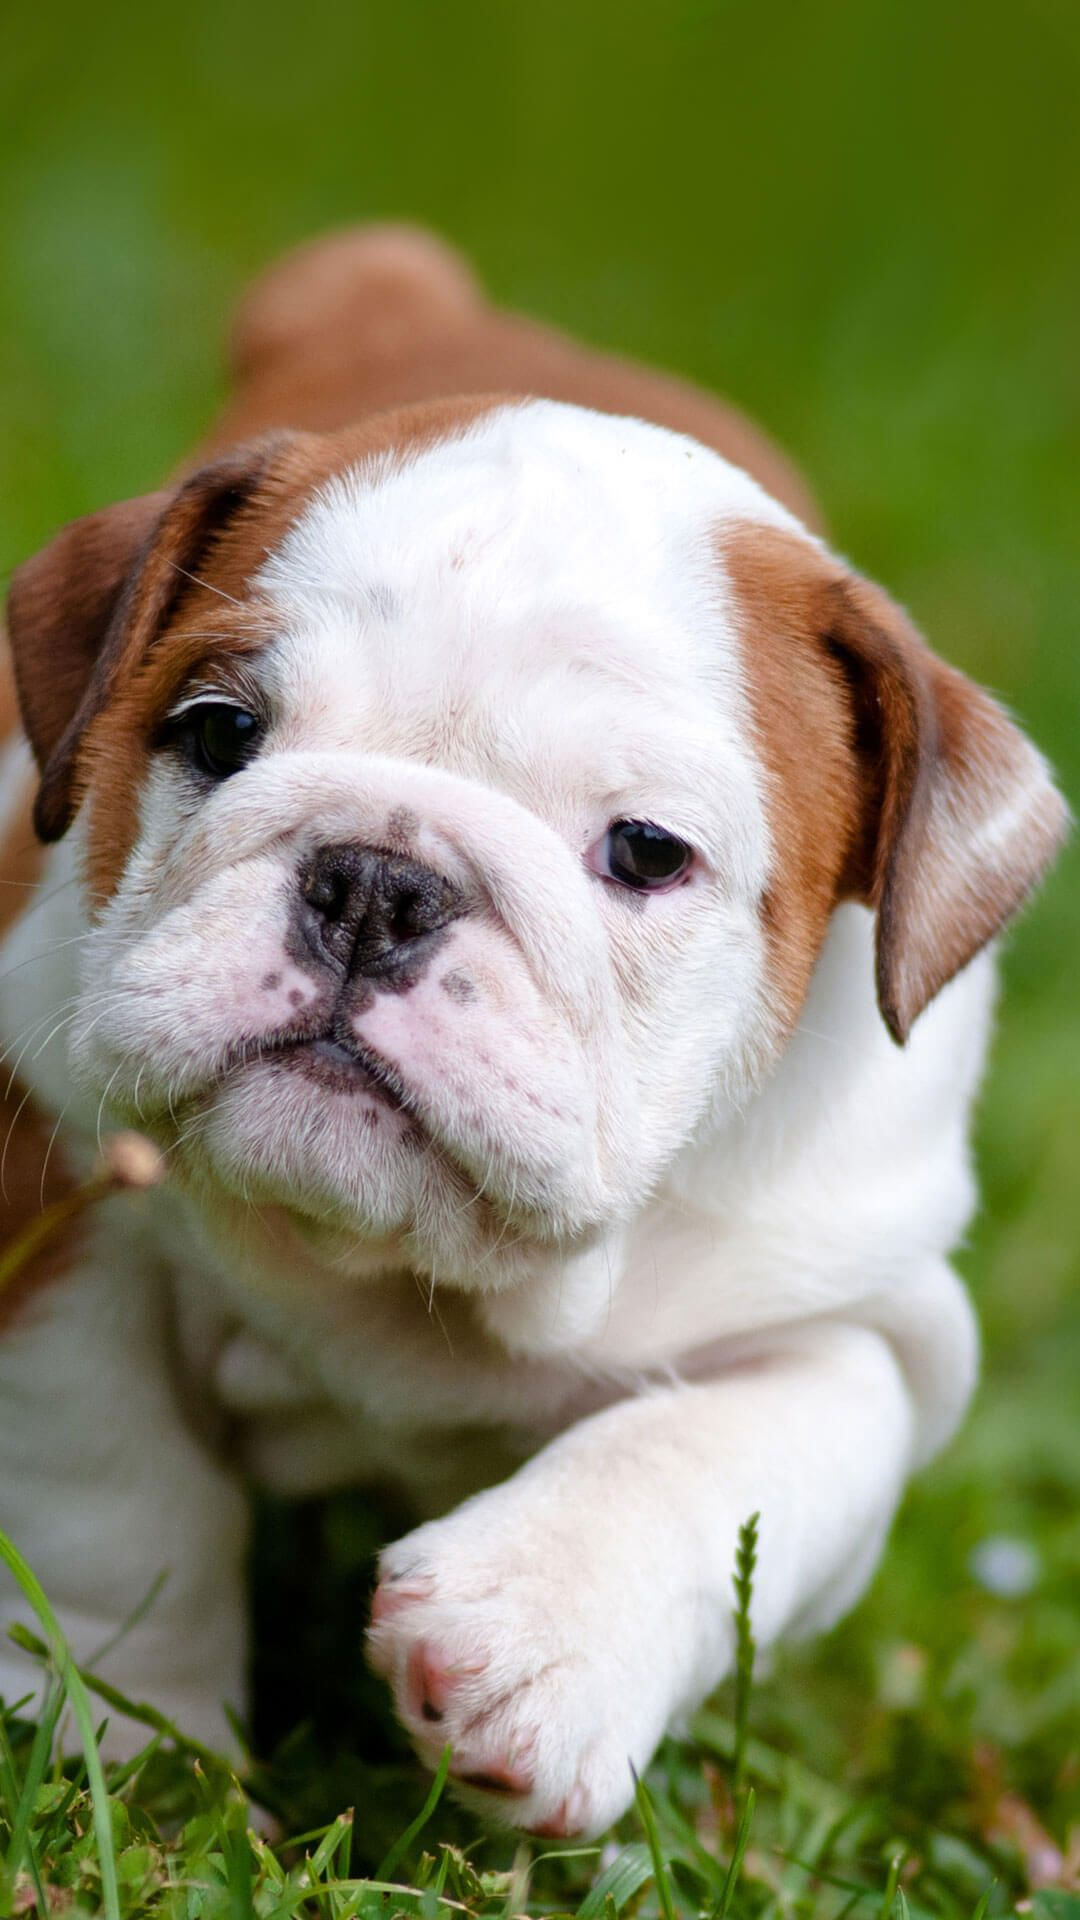 Cute English Bulldog Puppies Iphone Wallpaper Hd Cute Bulldog